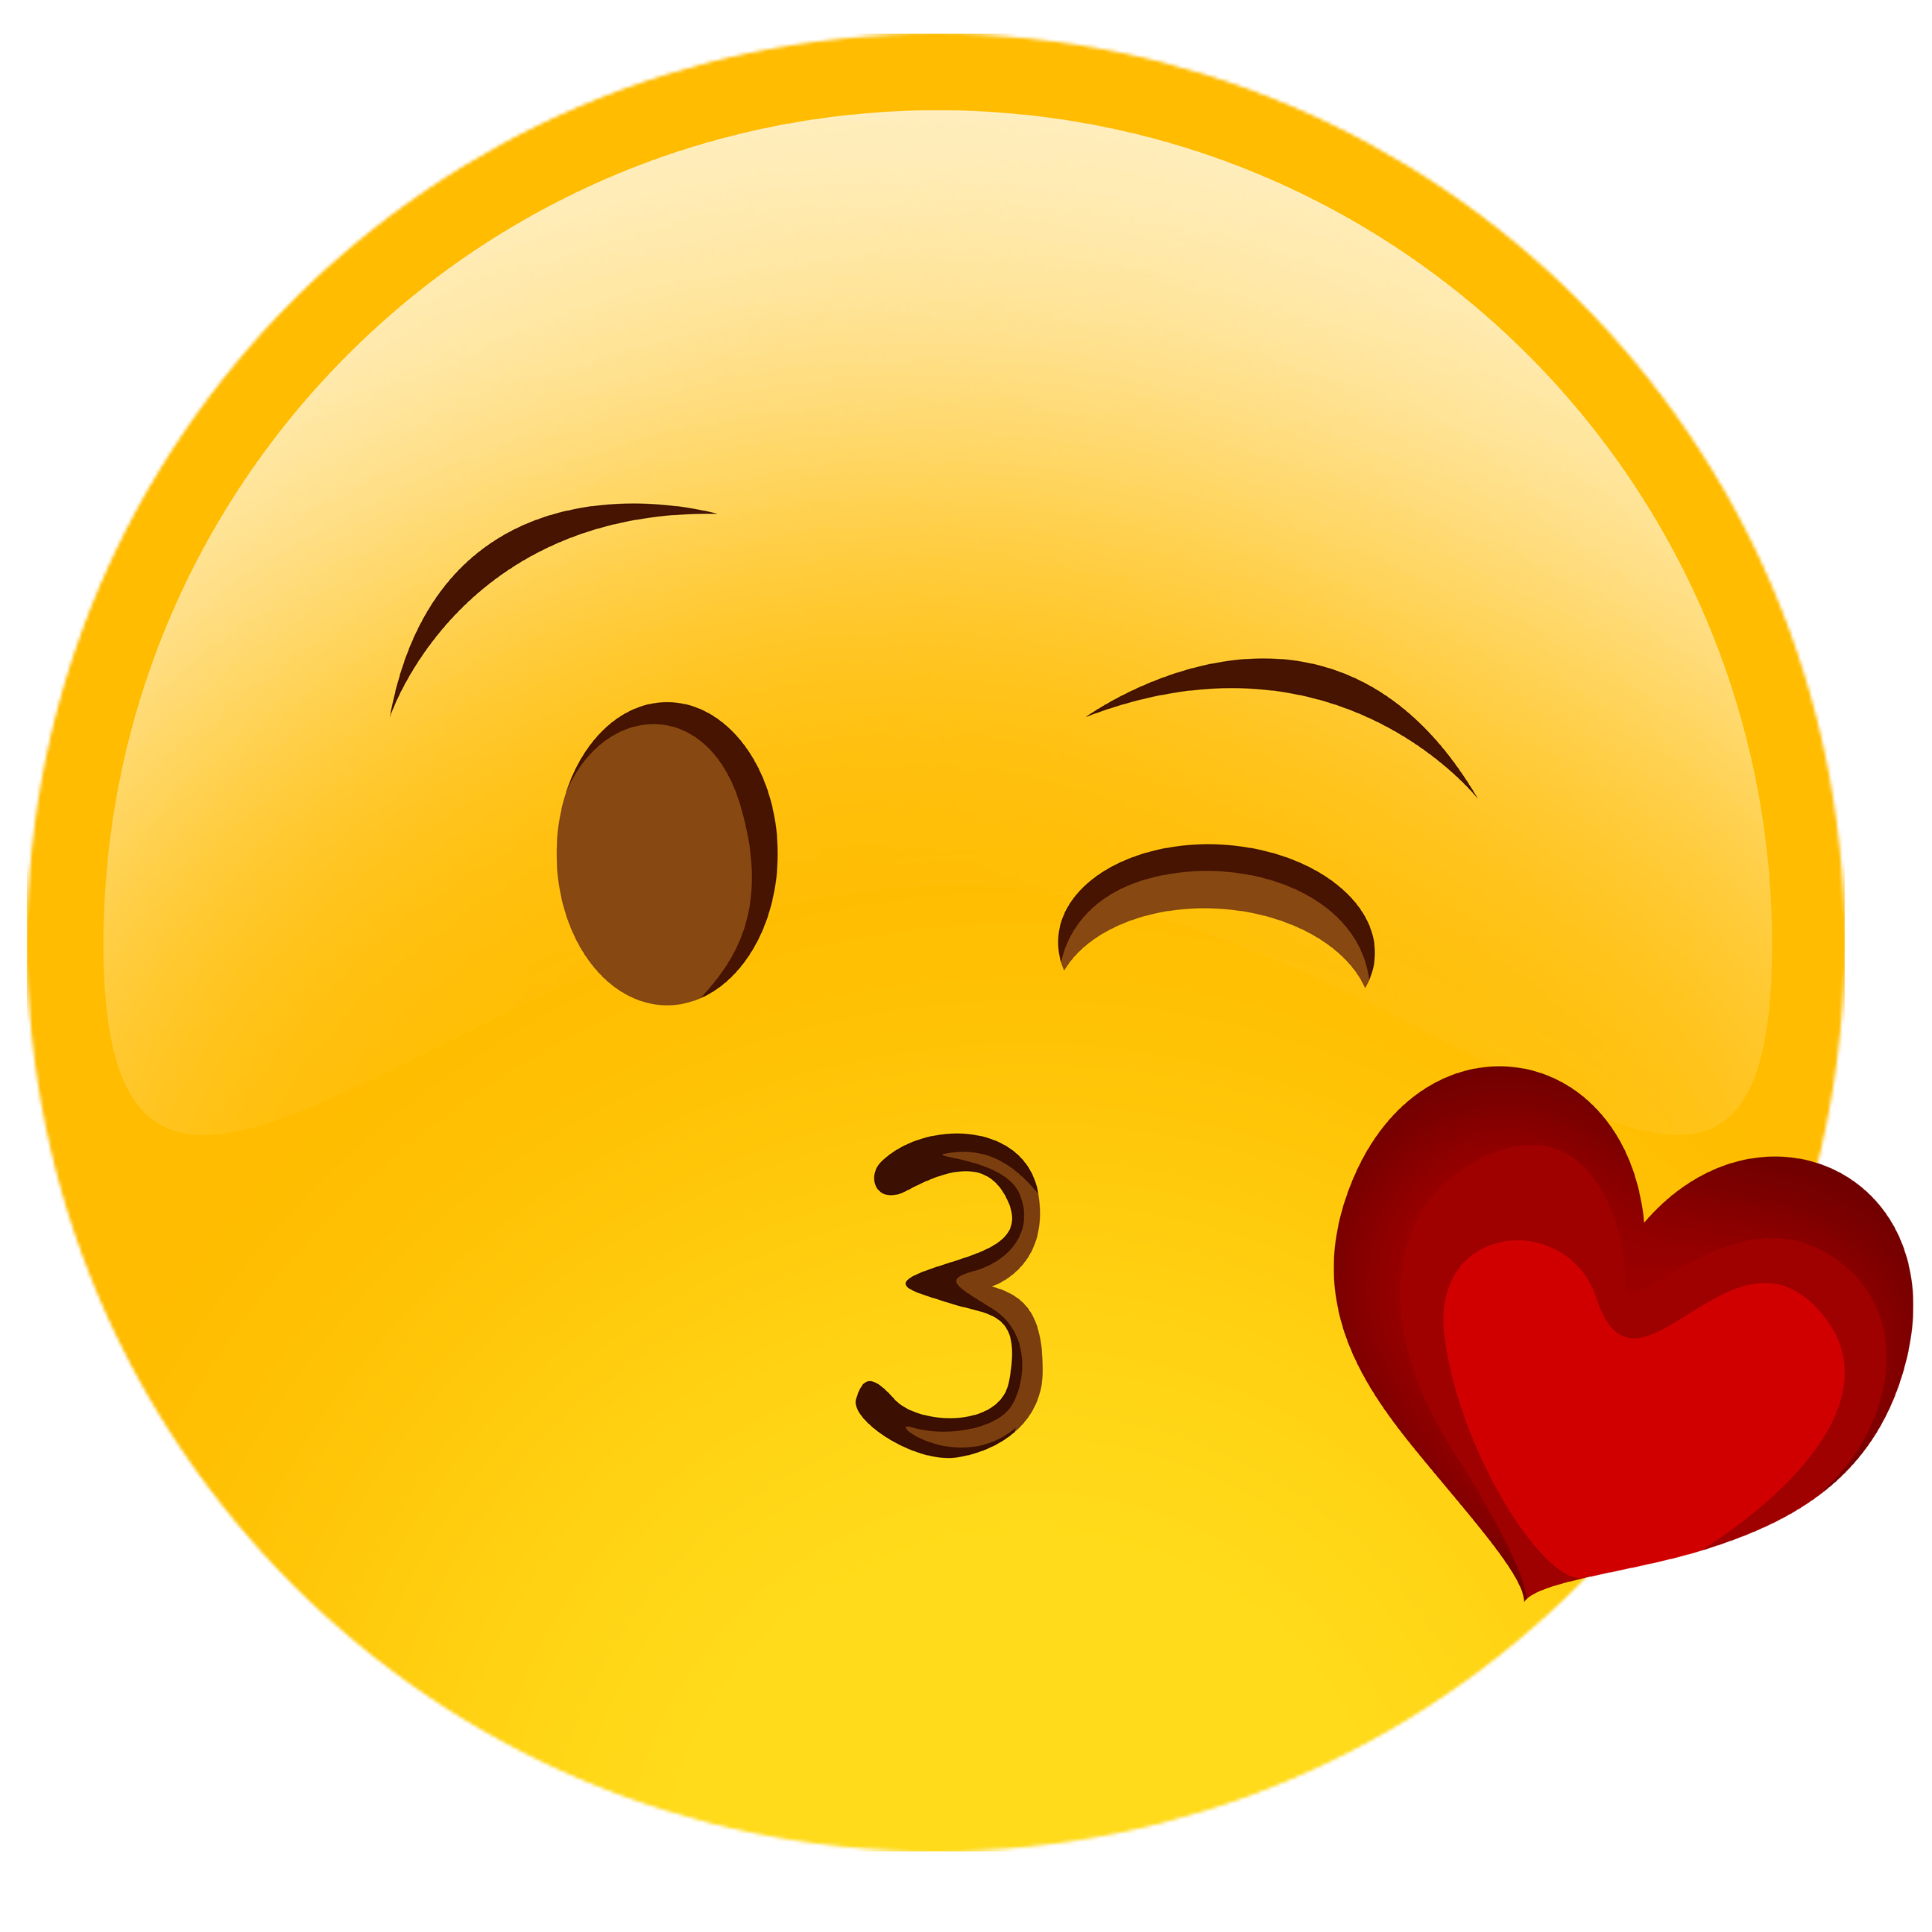 Emoticons Whatsapp Kiss, Hearts Png Images image #45549